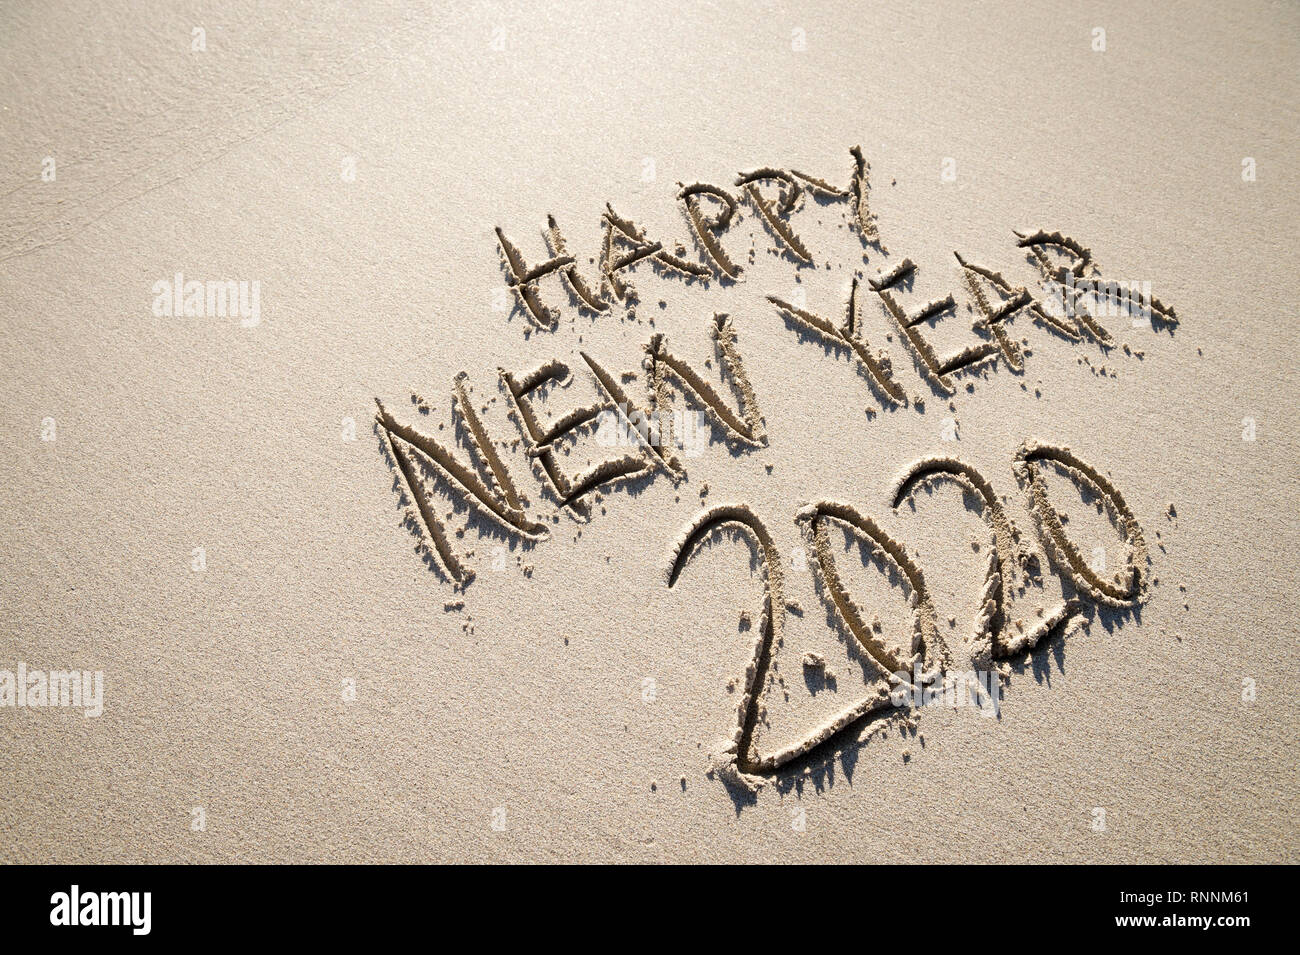 Happy New Year 2020 message handwritten in raised textured letters on a sand beach with smooth copy space Stock Photo